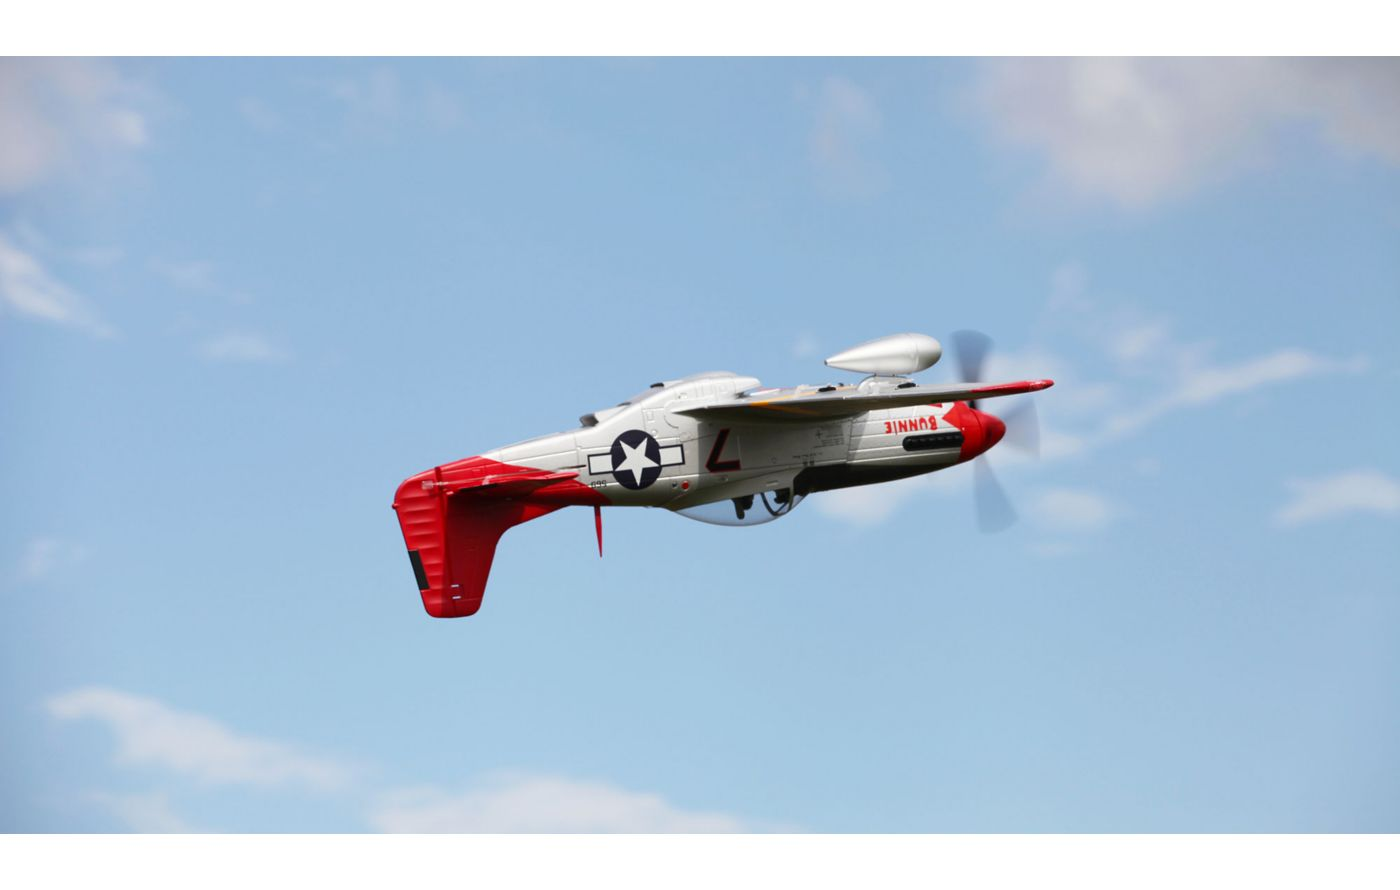 Image for P-51D Red Tail PNP, 1700mm from Force RC